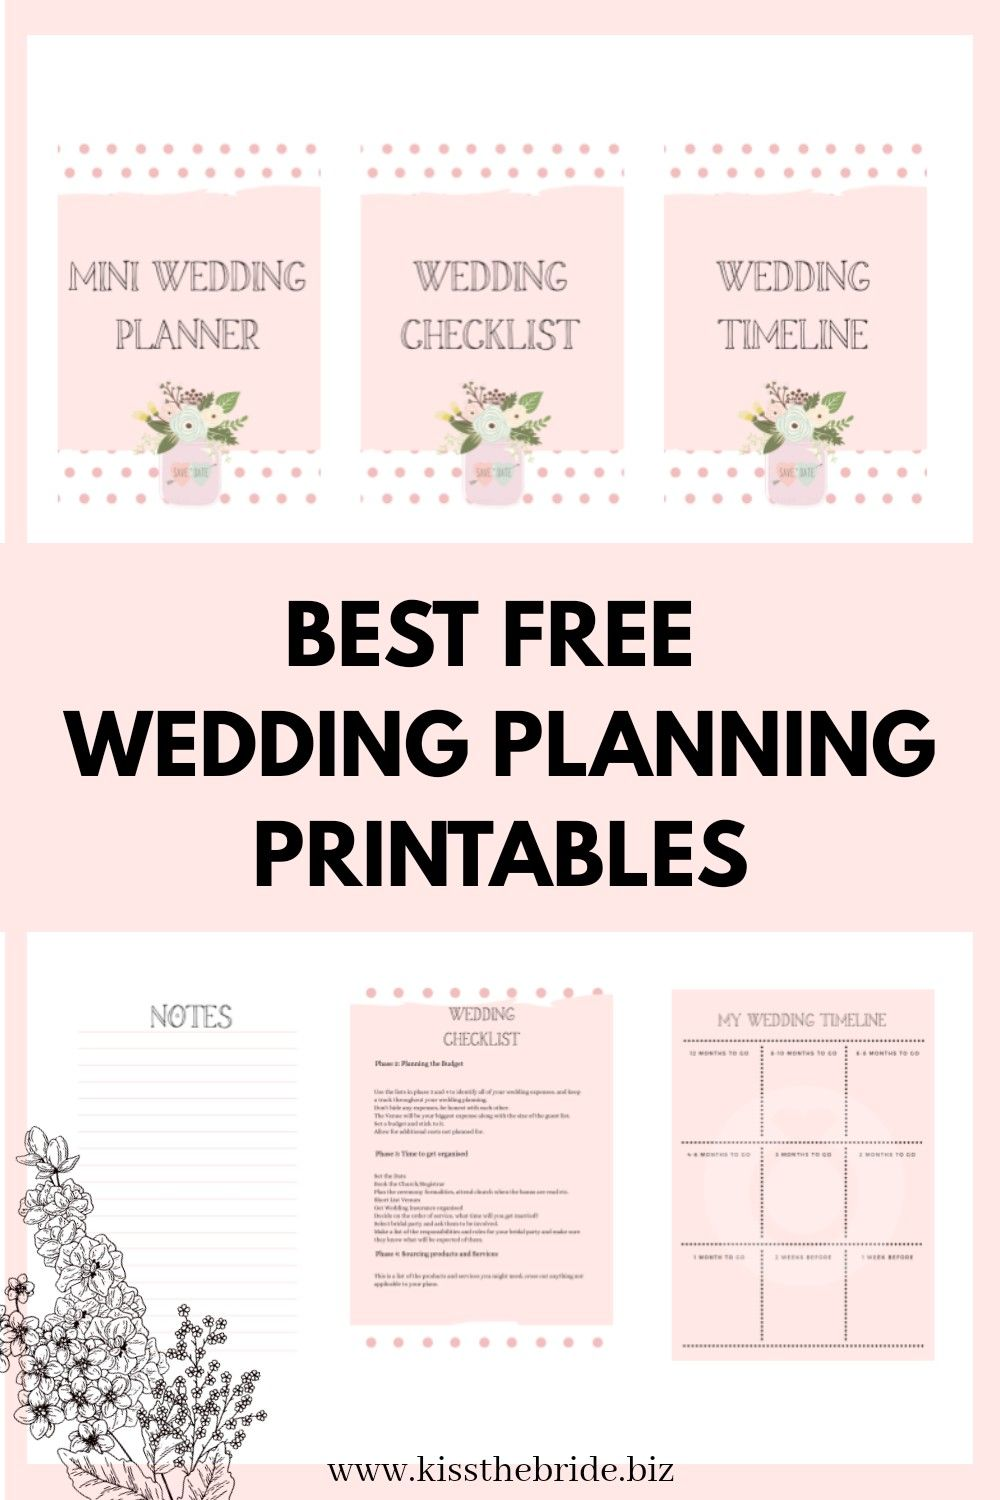 The Must Have Wedding Planner And It Is Free Kiss The Bride Magazine In 2020 Free Wedding Planning Printables Wedding Planner Printables Wedding Planning Printables